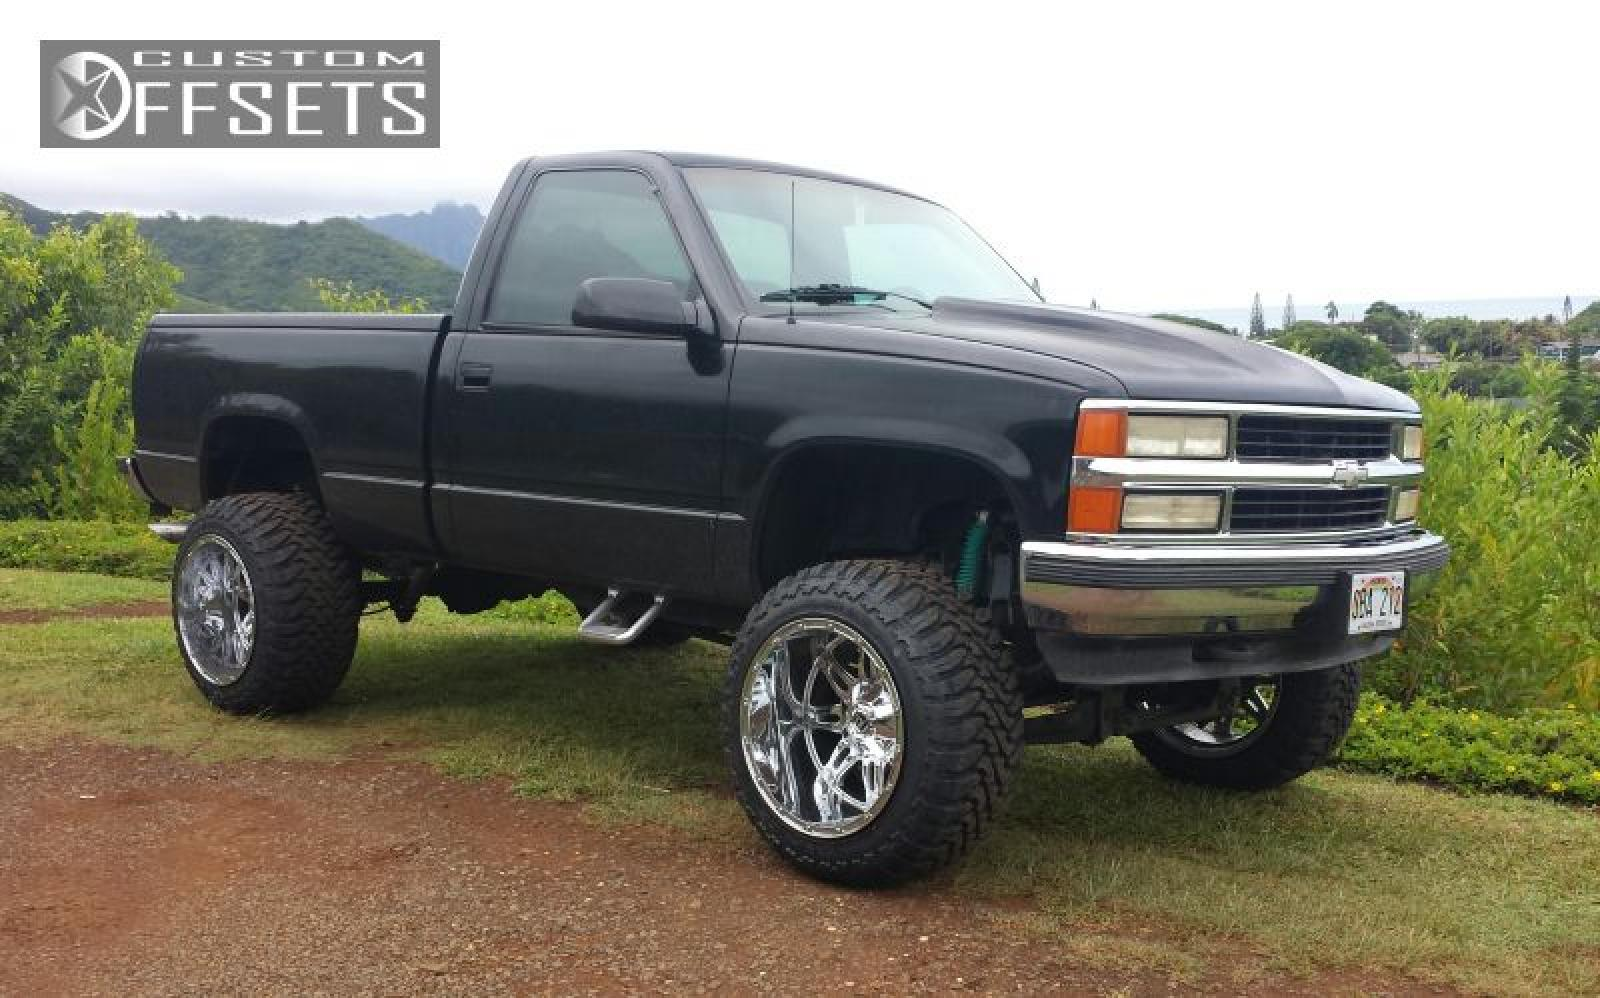 1994 Chevrolet C K 1500 Series Information And Photos Zombiedrive 94 Chevy Truck Fuel Filter 800 1024 1280 1600 Origin